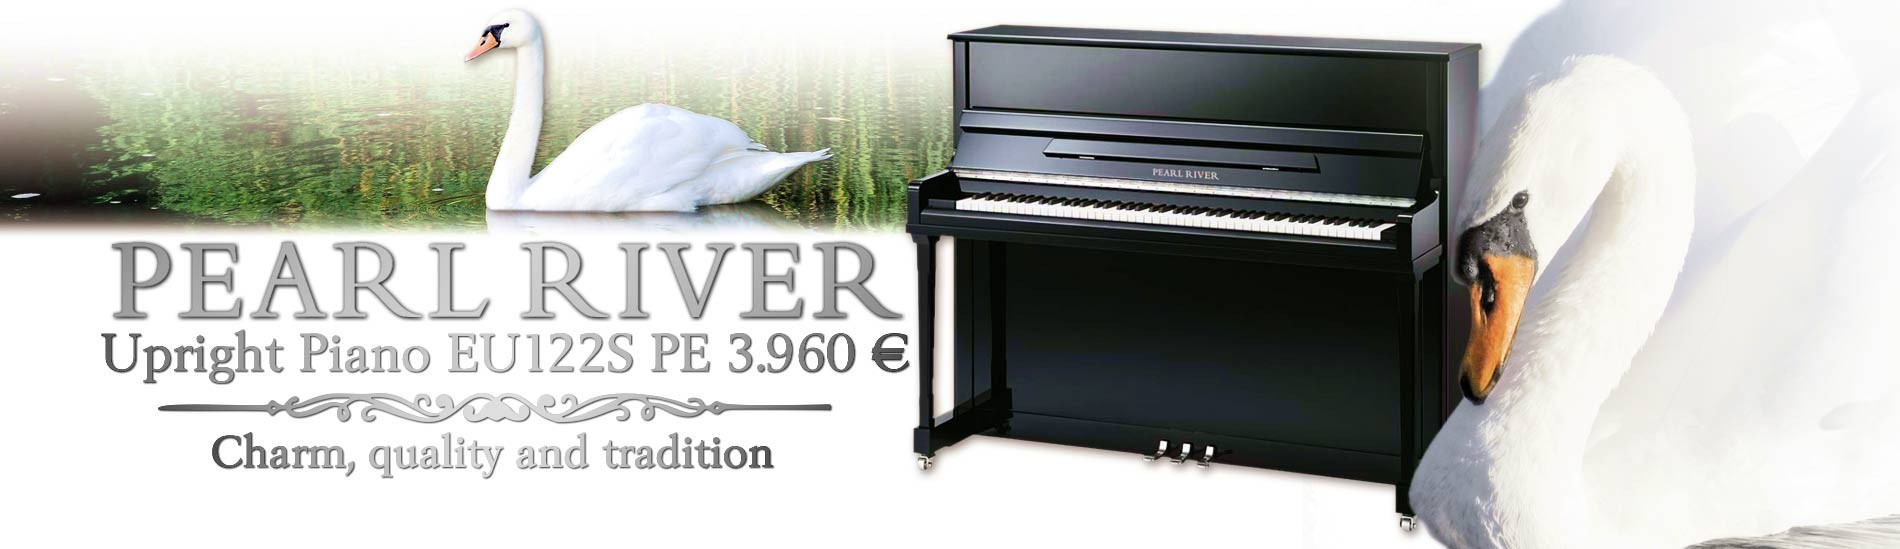 Pearl River Upright Piano EU122S PE Black Polished Premium Professional